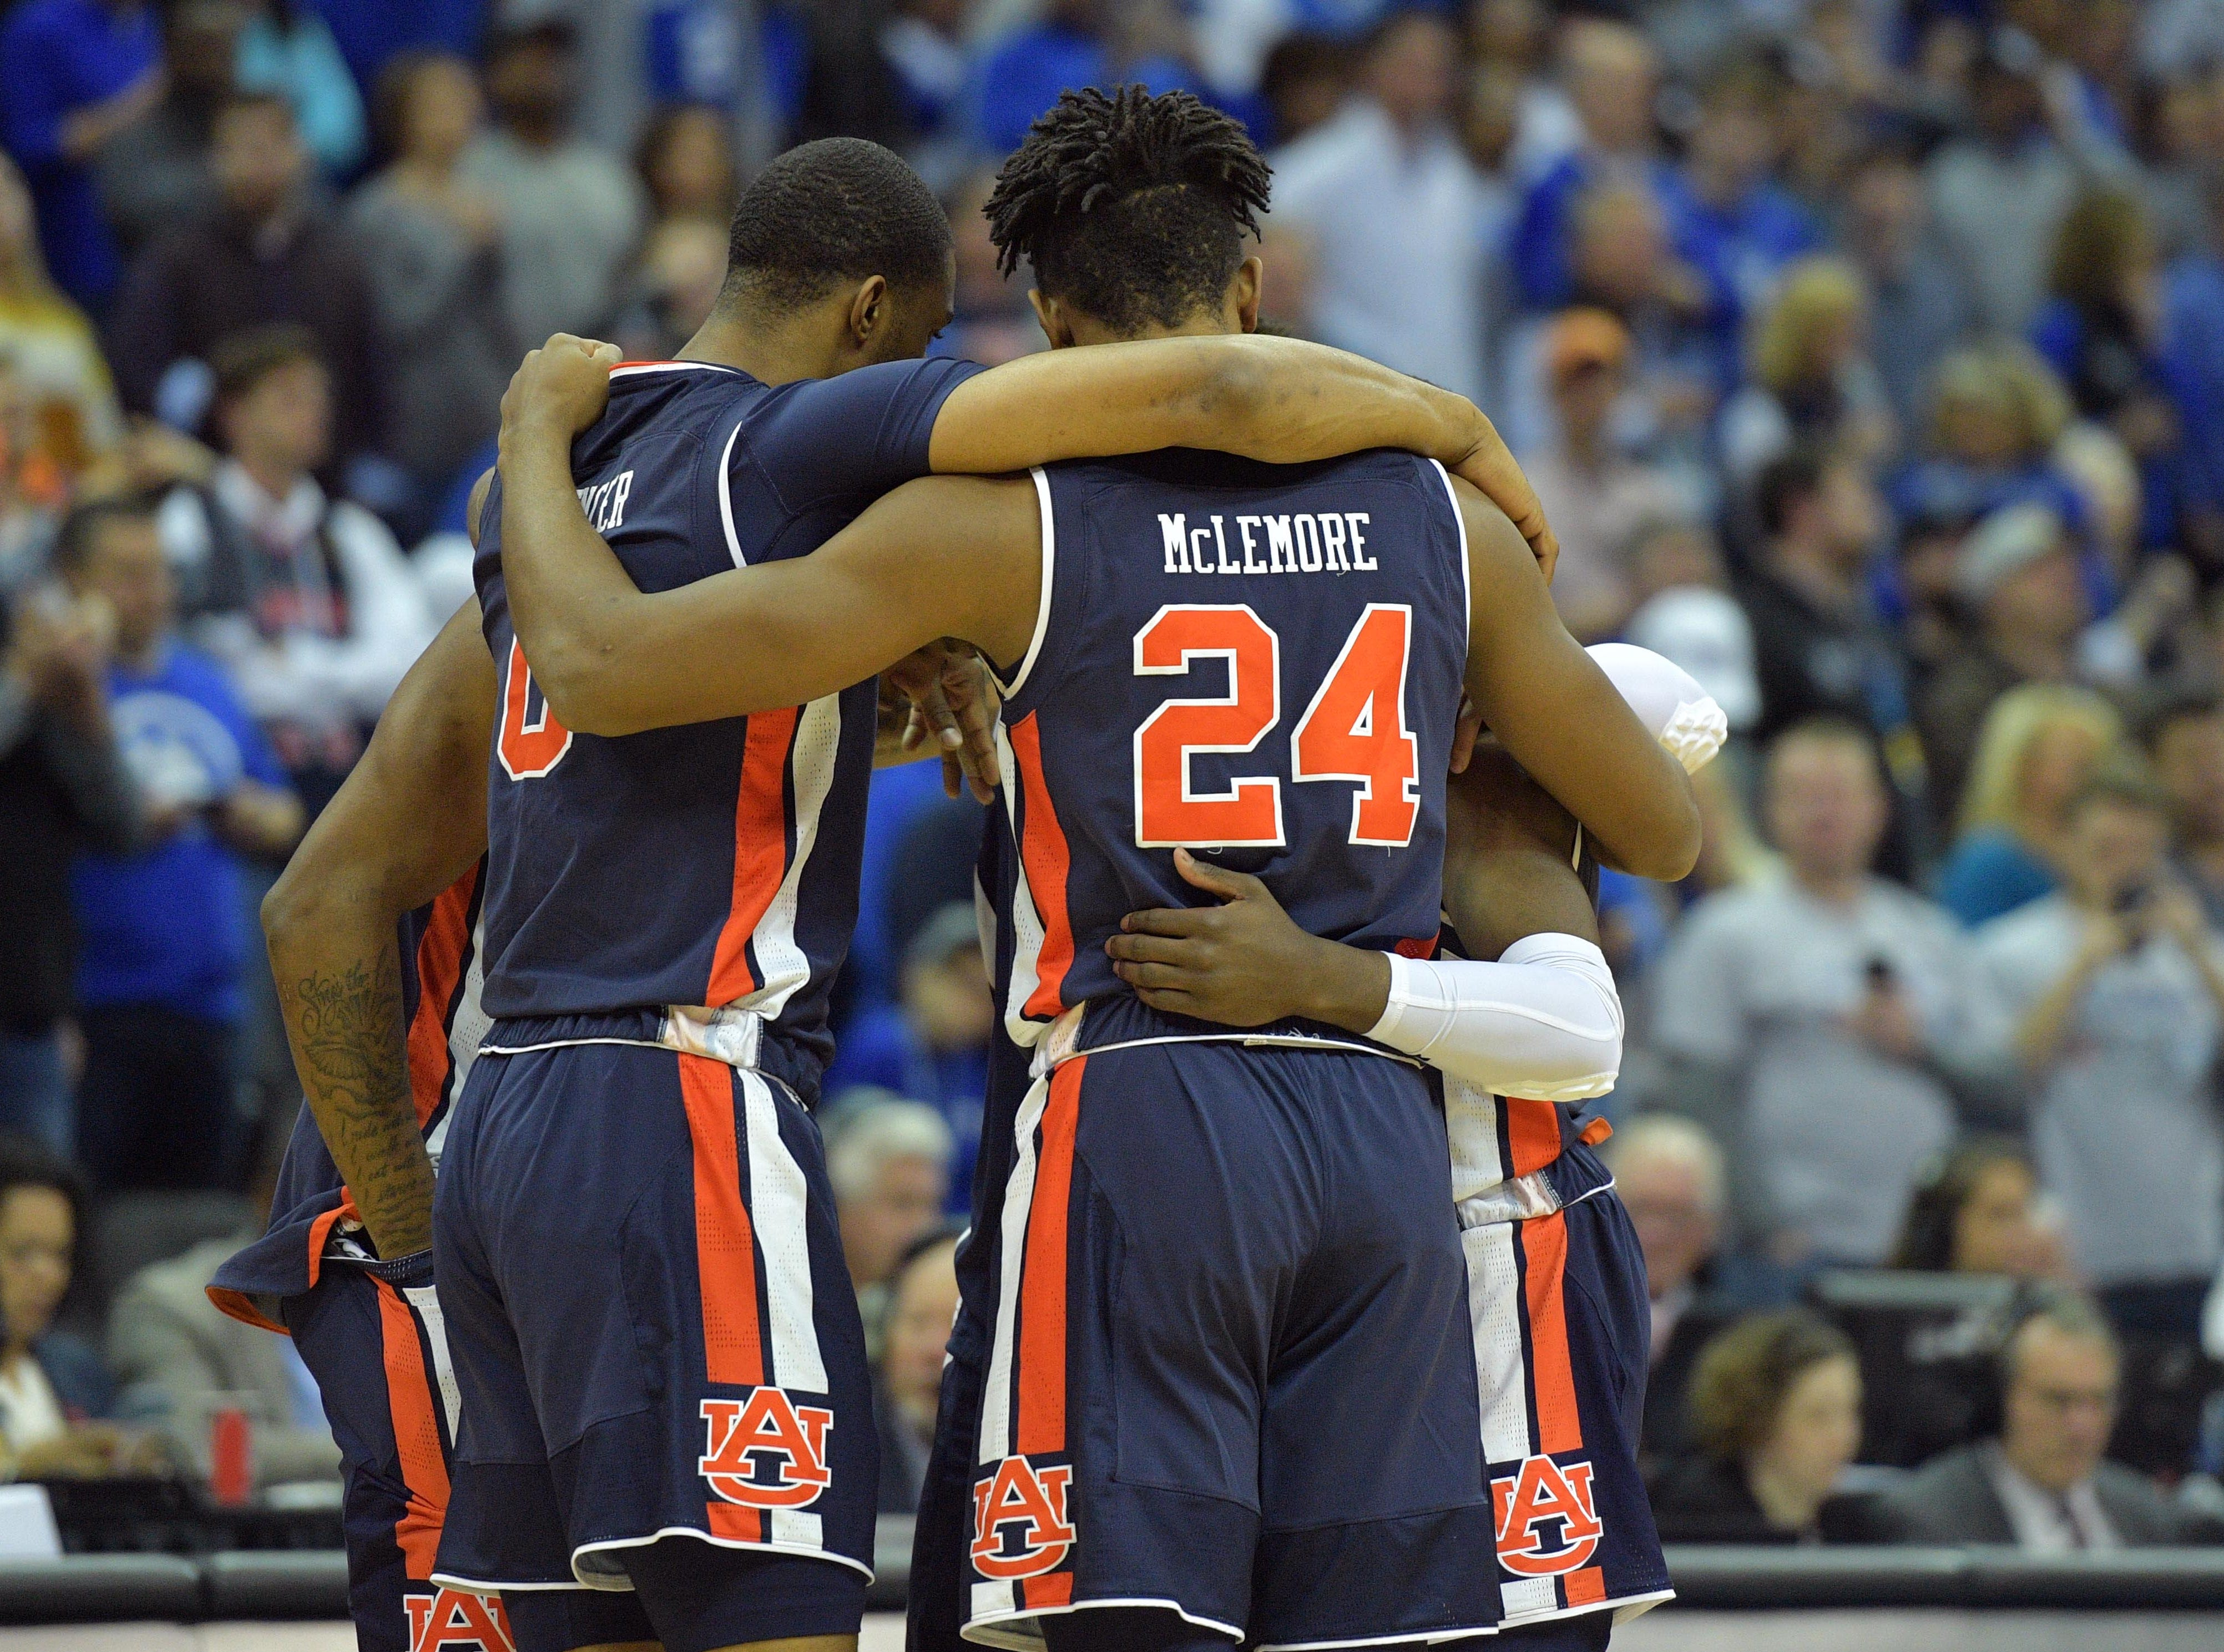 Mar 31, 2019; Kansas City, MO, United States; Auburn Tigers players huddle against the Kentucky Wildcats during the first half in the championship game of the midwest regional of the 2019 NCAA Tournament at Sprint Center. Mandatory Credit: Denny Medley-USA TODAY Sports